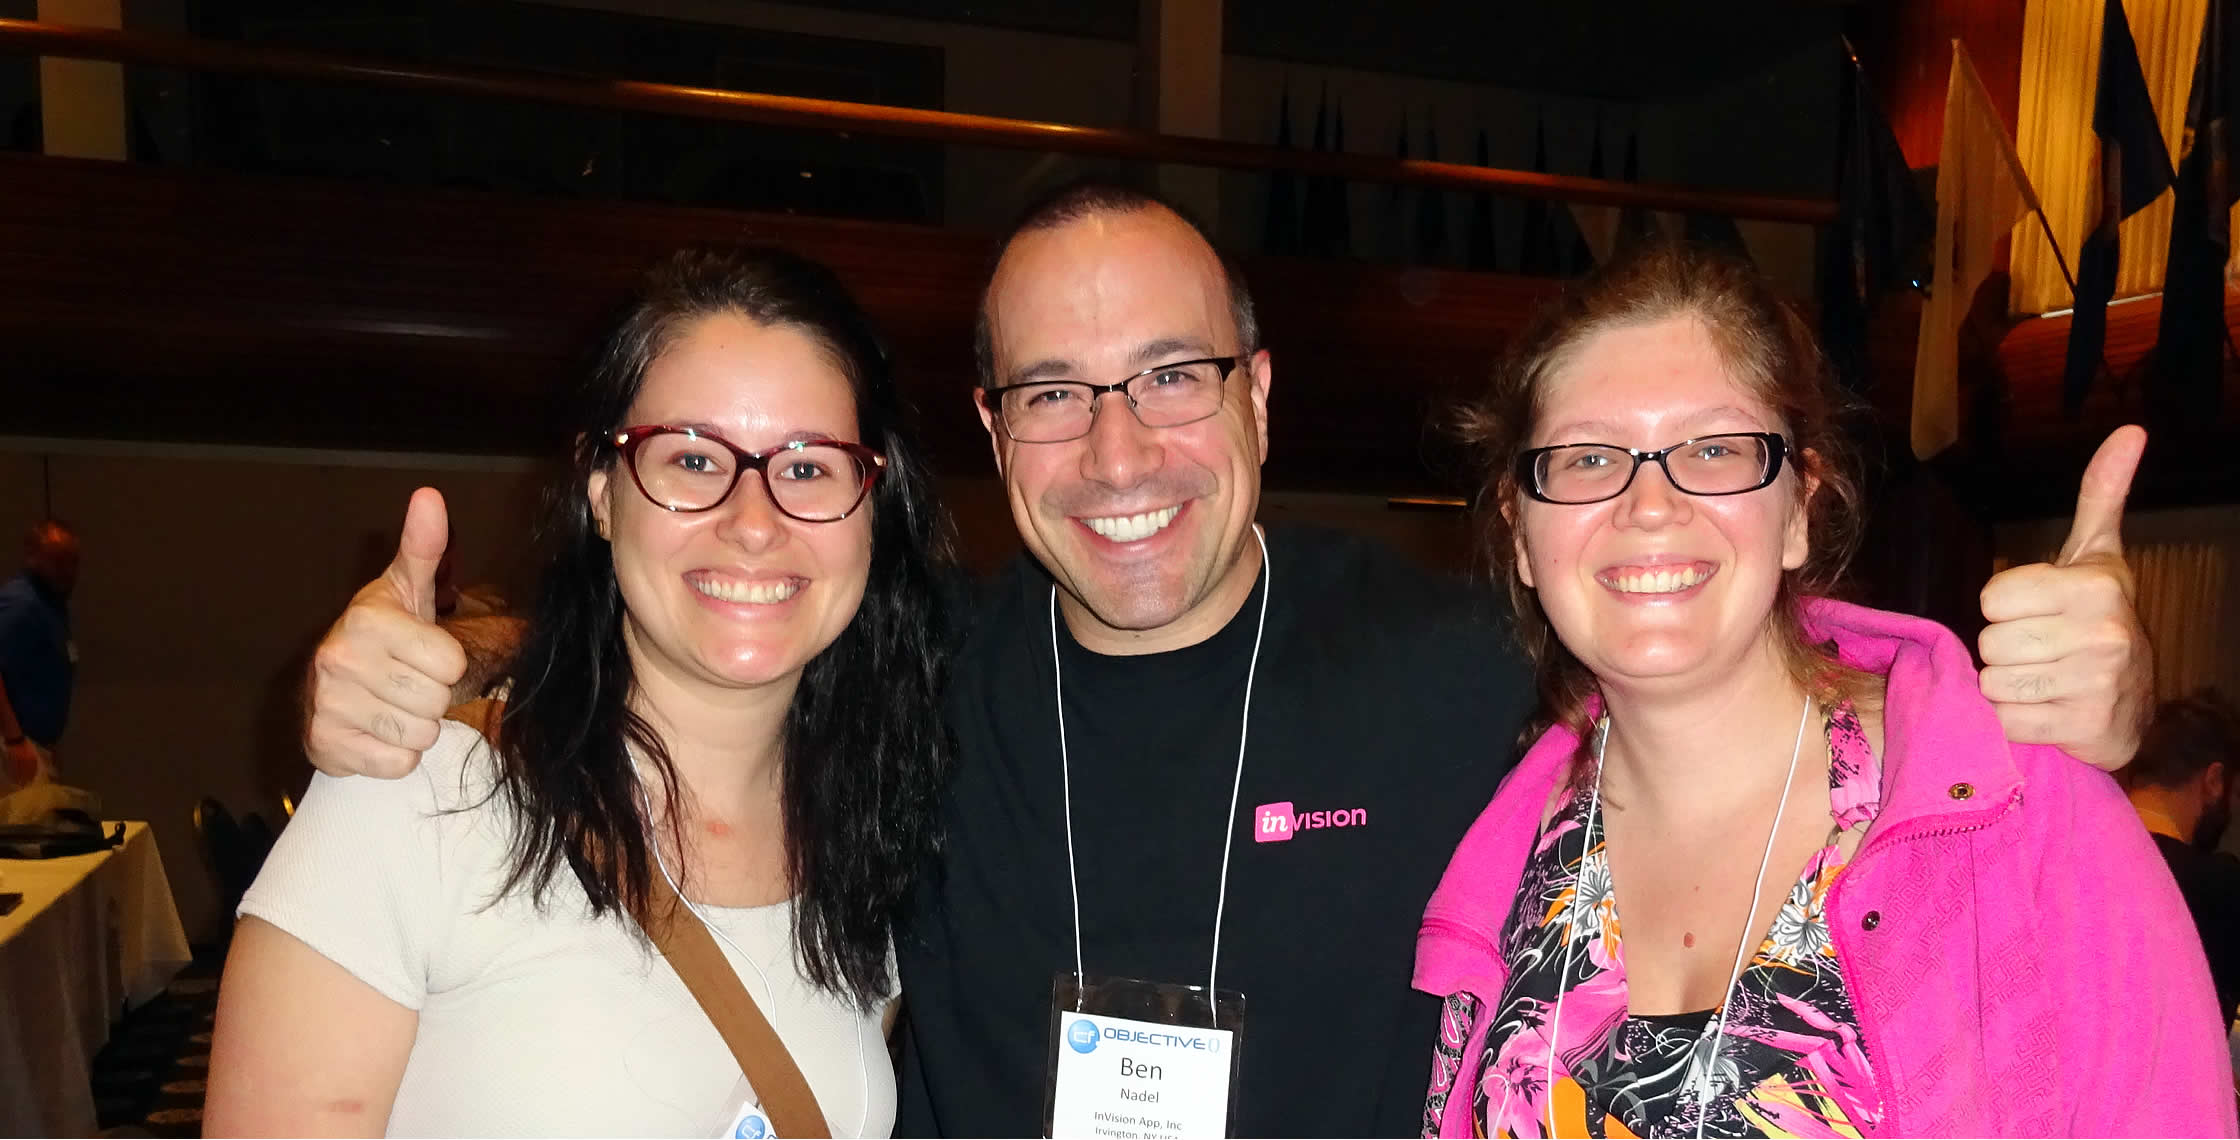 Ben Nadel at cf.Objective() 2017 (Washington, D.C.) with: Julie Dion and Catherine Neault